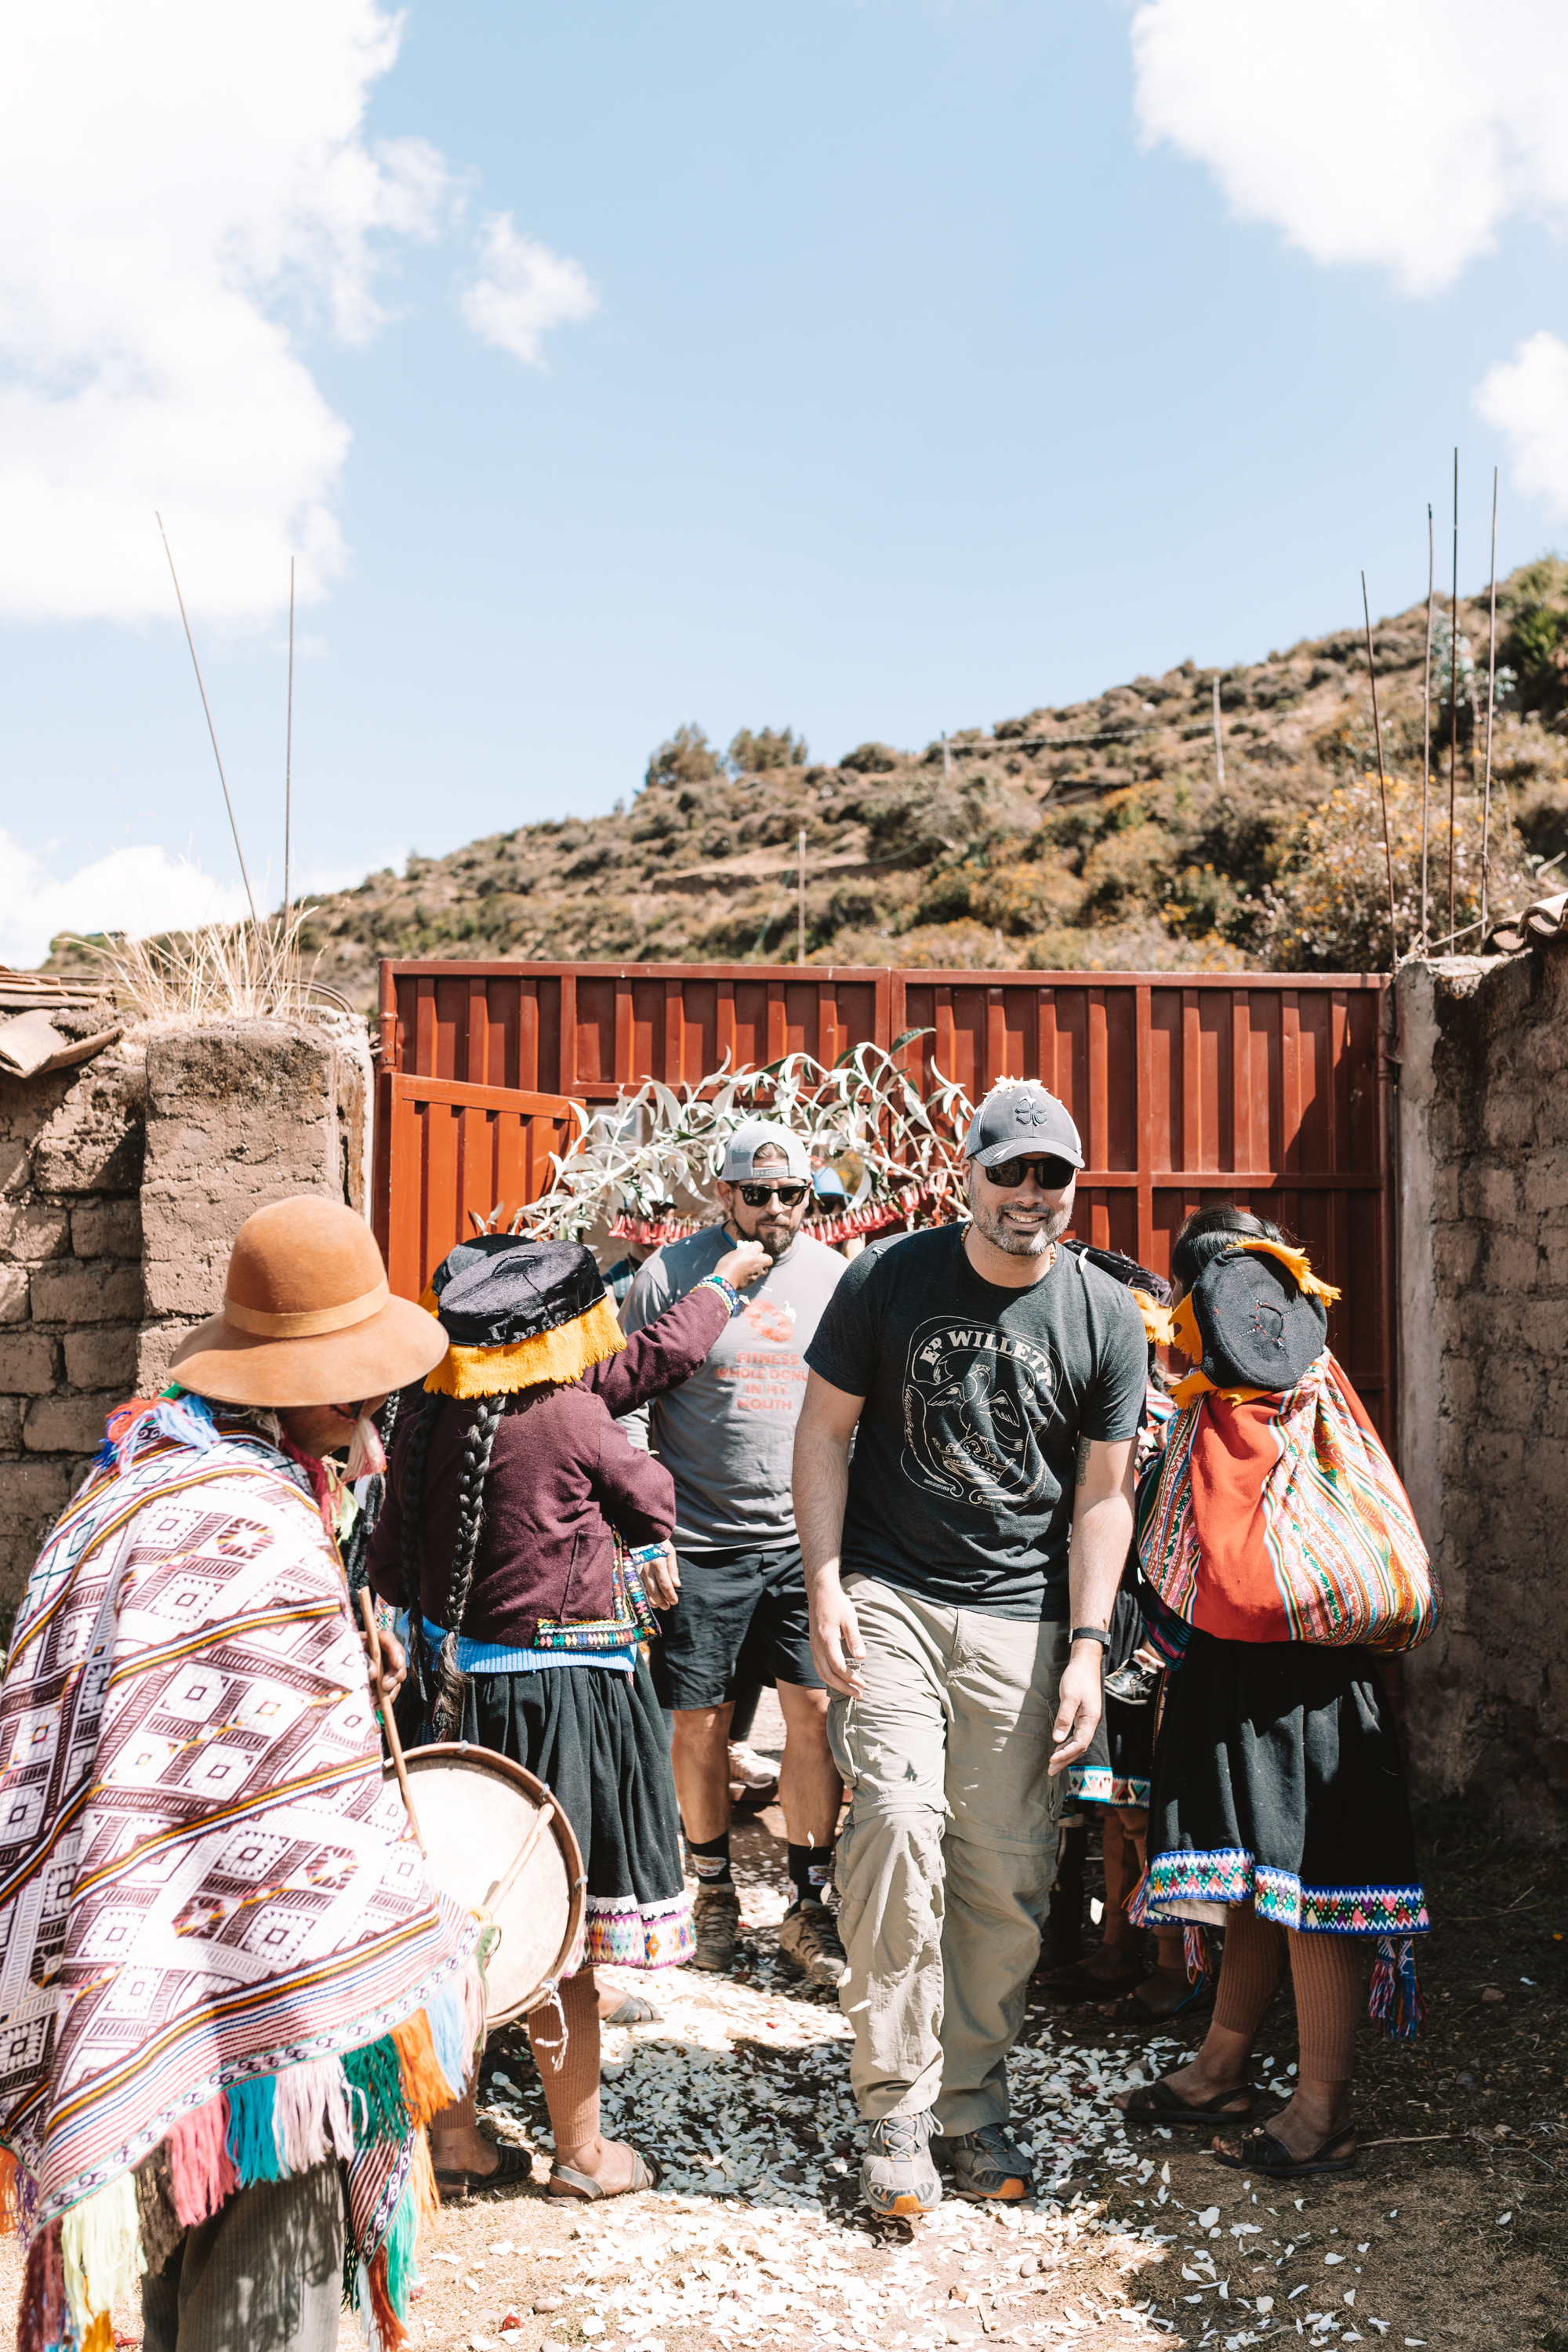 arriving at the school in the Andean Mountains and being greeted by a traditional ceremony and flower petals thrown on our heads #peruretreat #wanderlust #travel